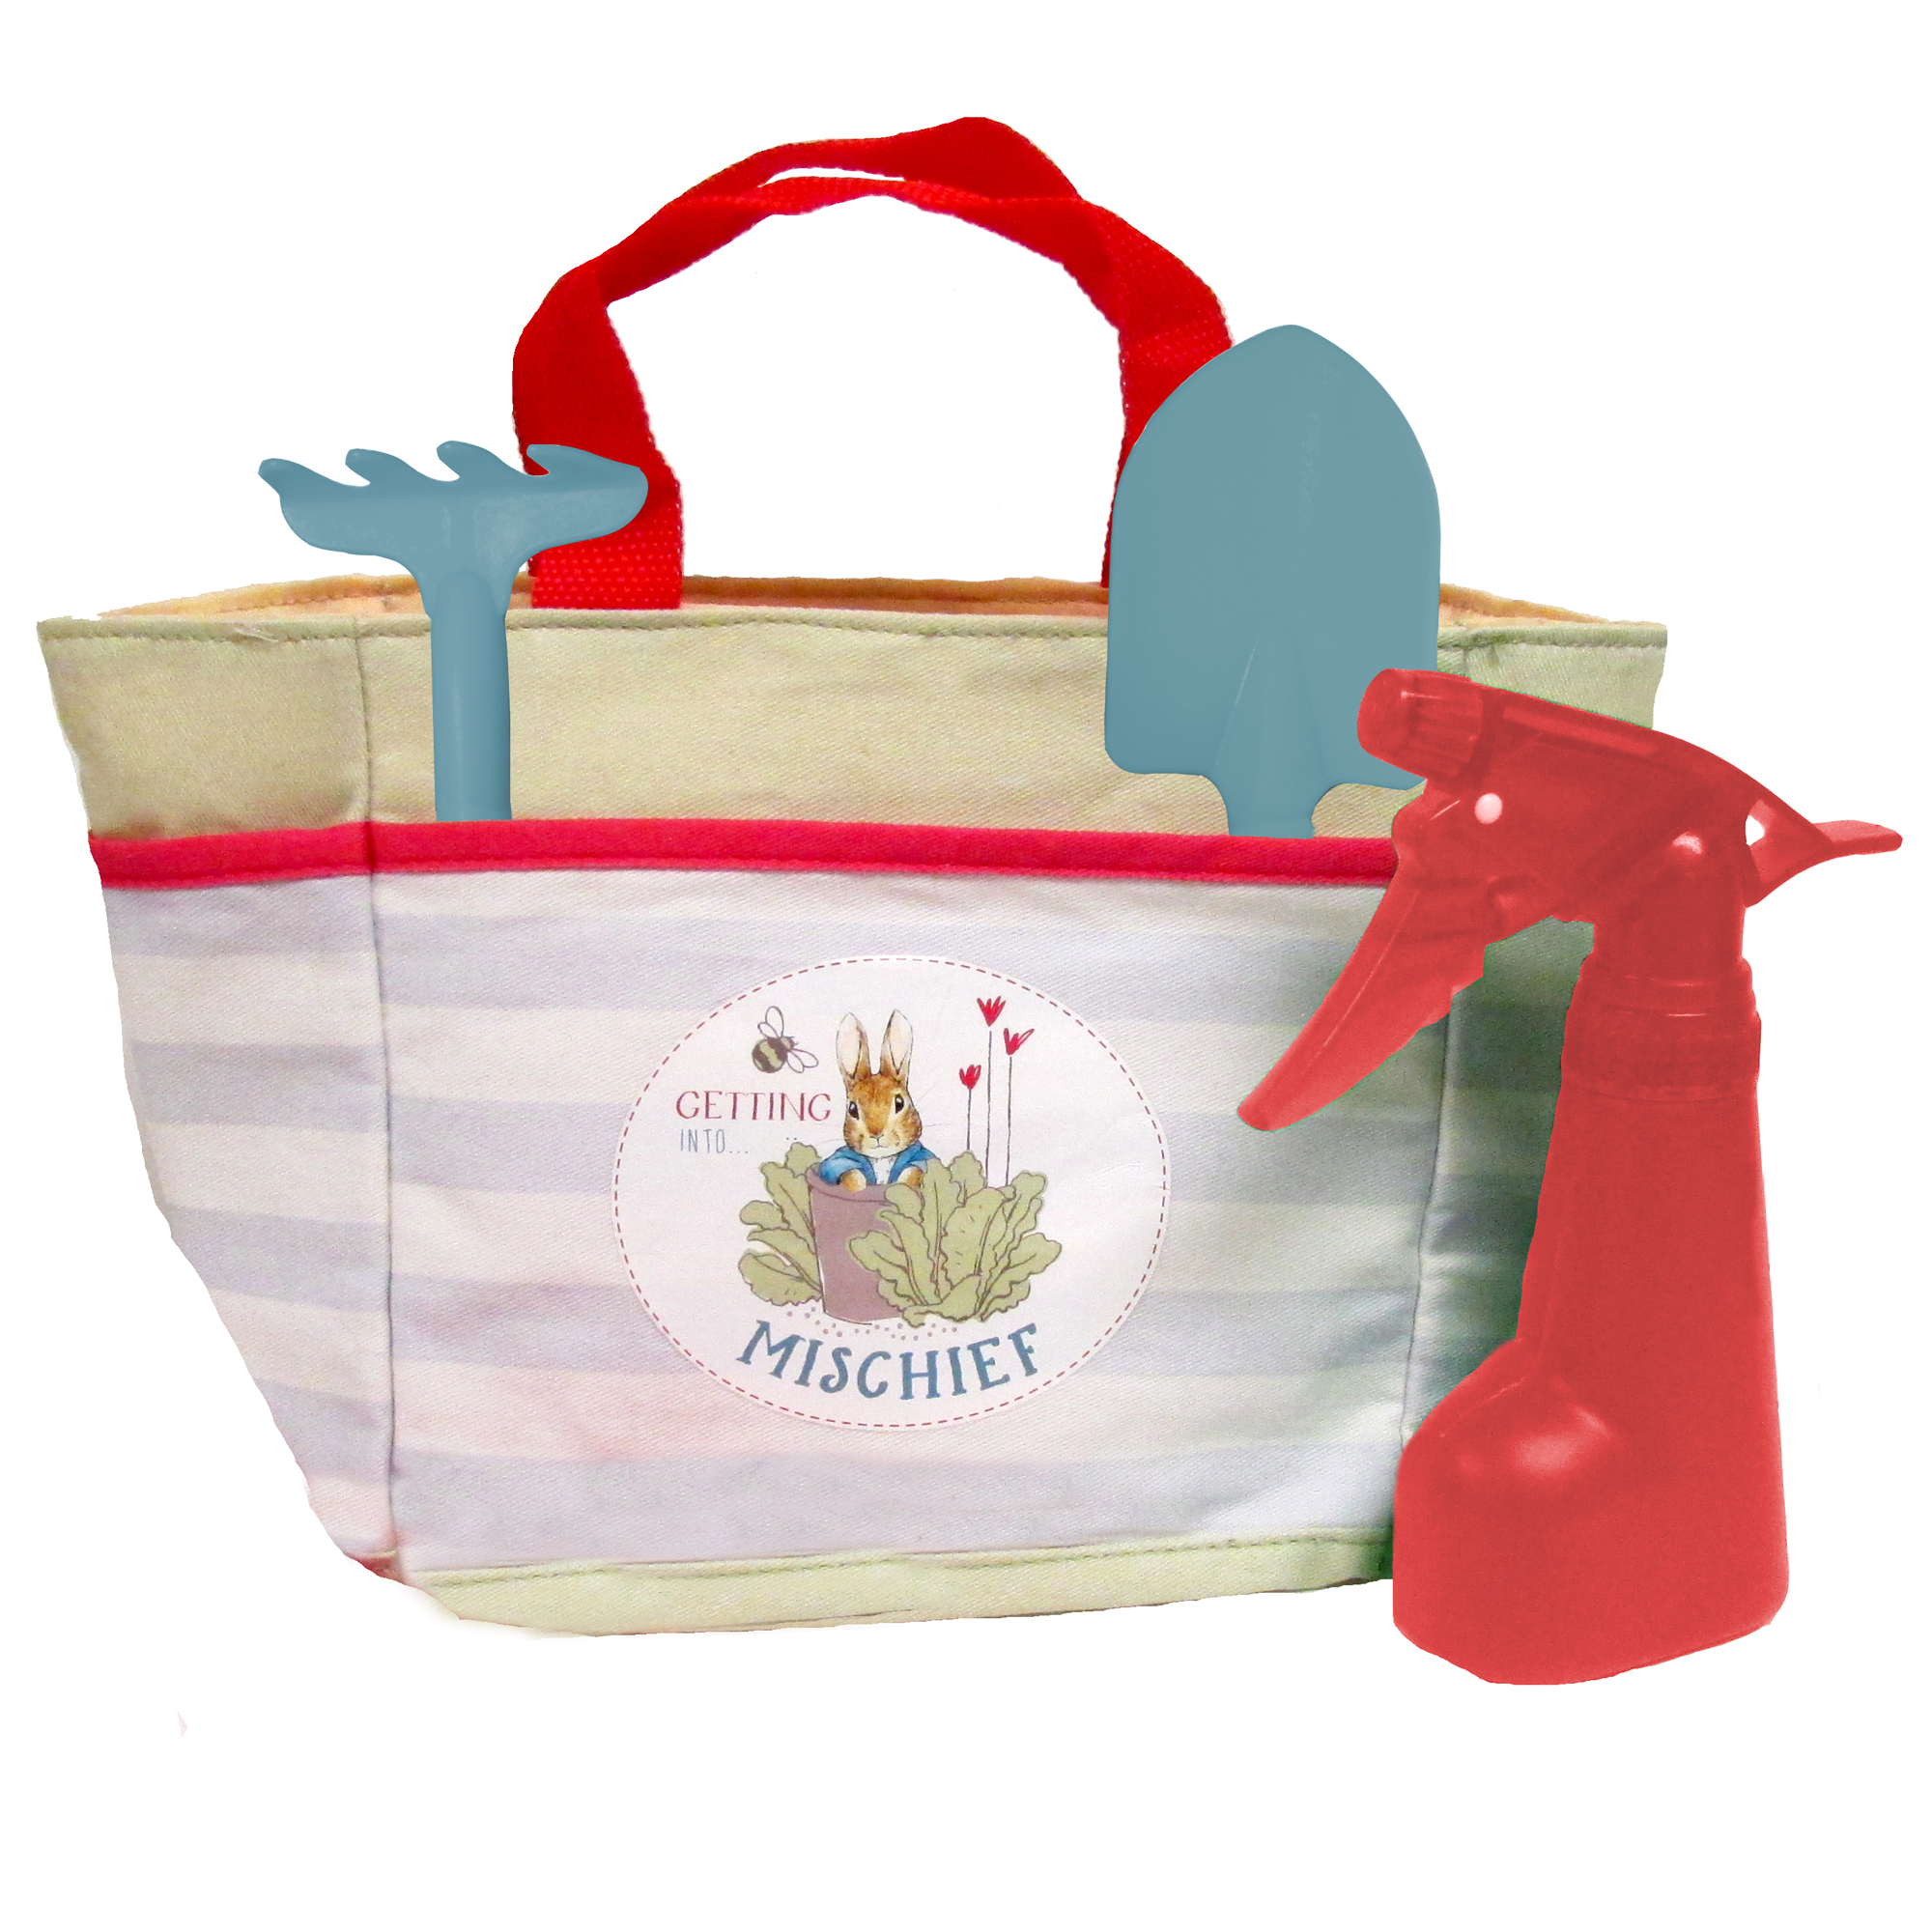 Beatrix Potter Small Gardening Set in Tote Bag